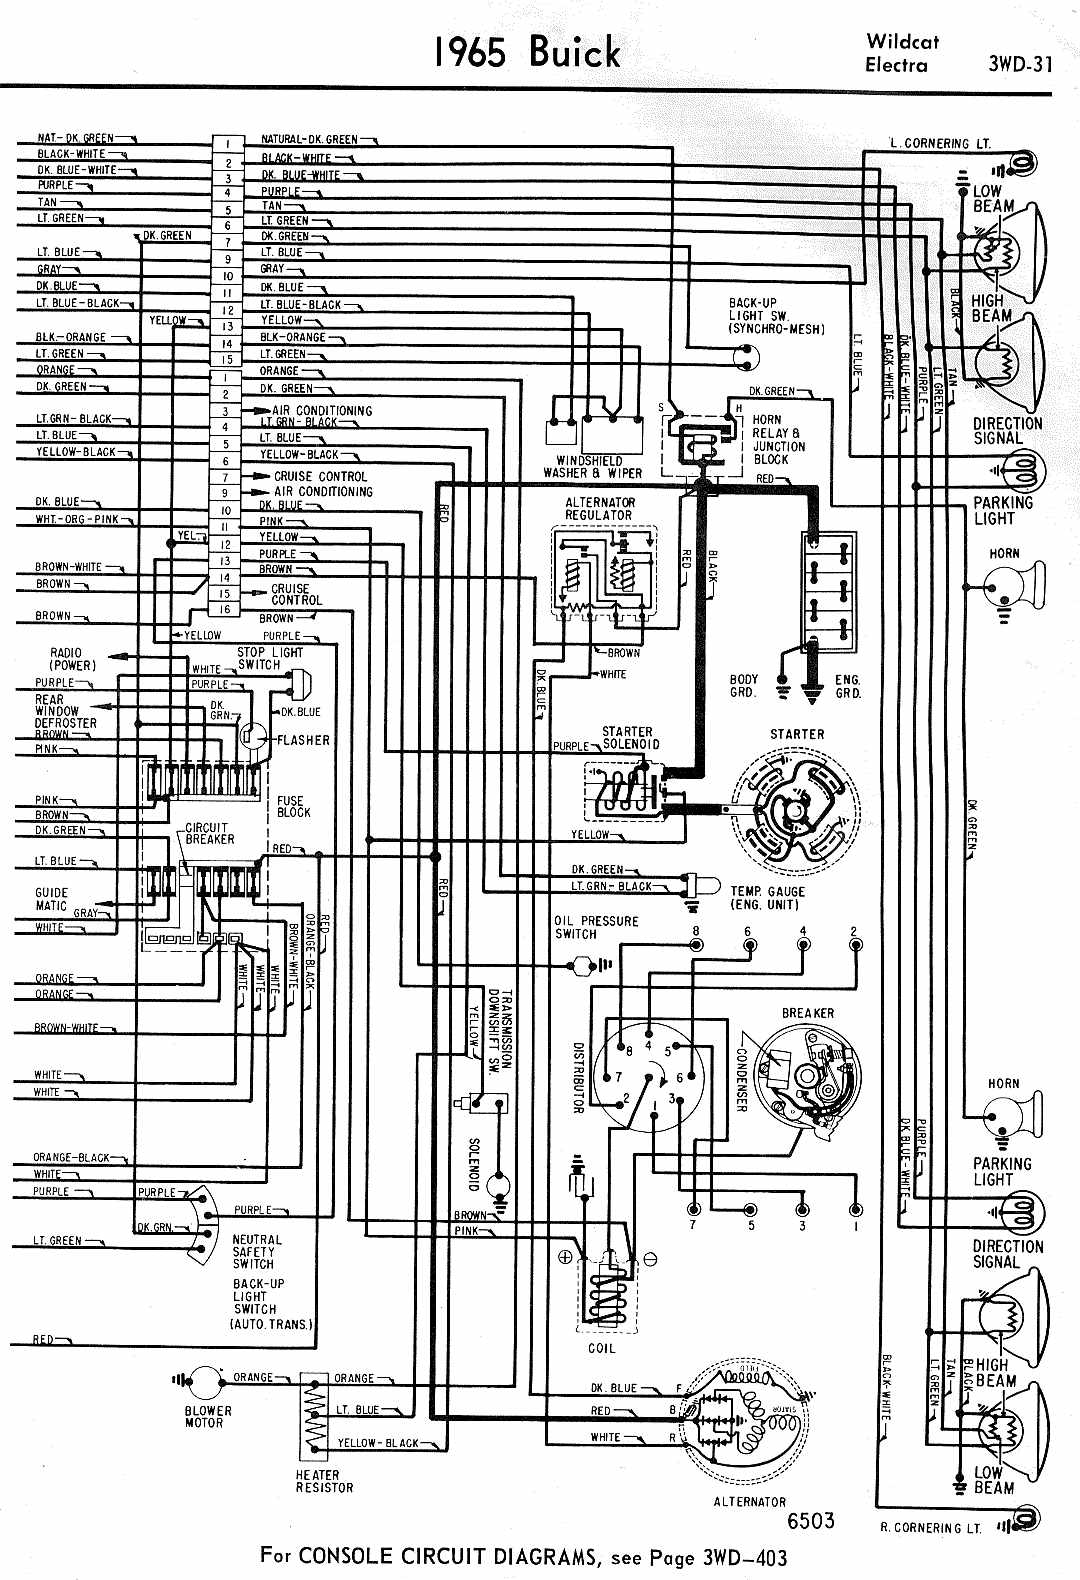 Scag Turf Tiger Wiring Diagram Page 3 And Schematics Kawasaki Fd750 Regulator For 1964 Buick Riviera Part 2 Wire Center U2022 Rh Epelican Co 1995